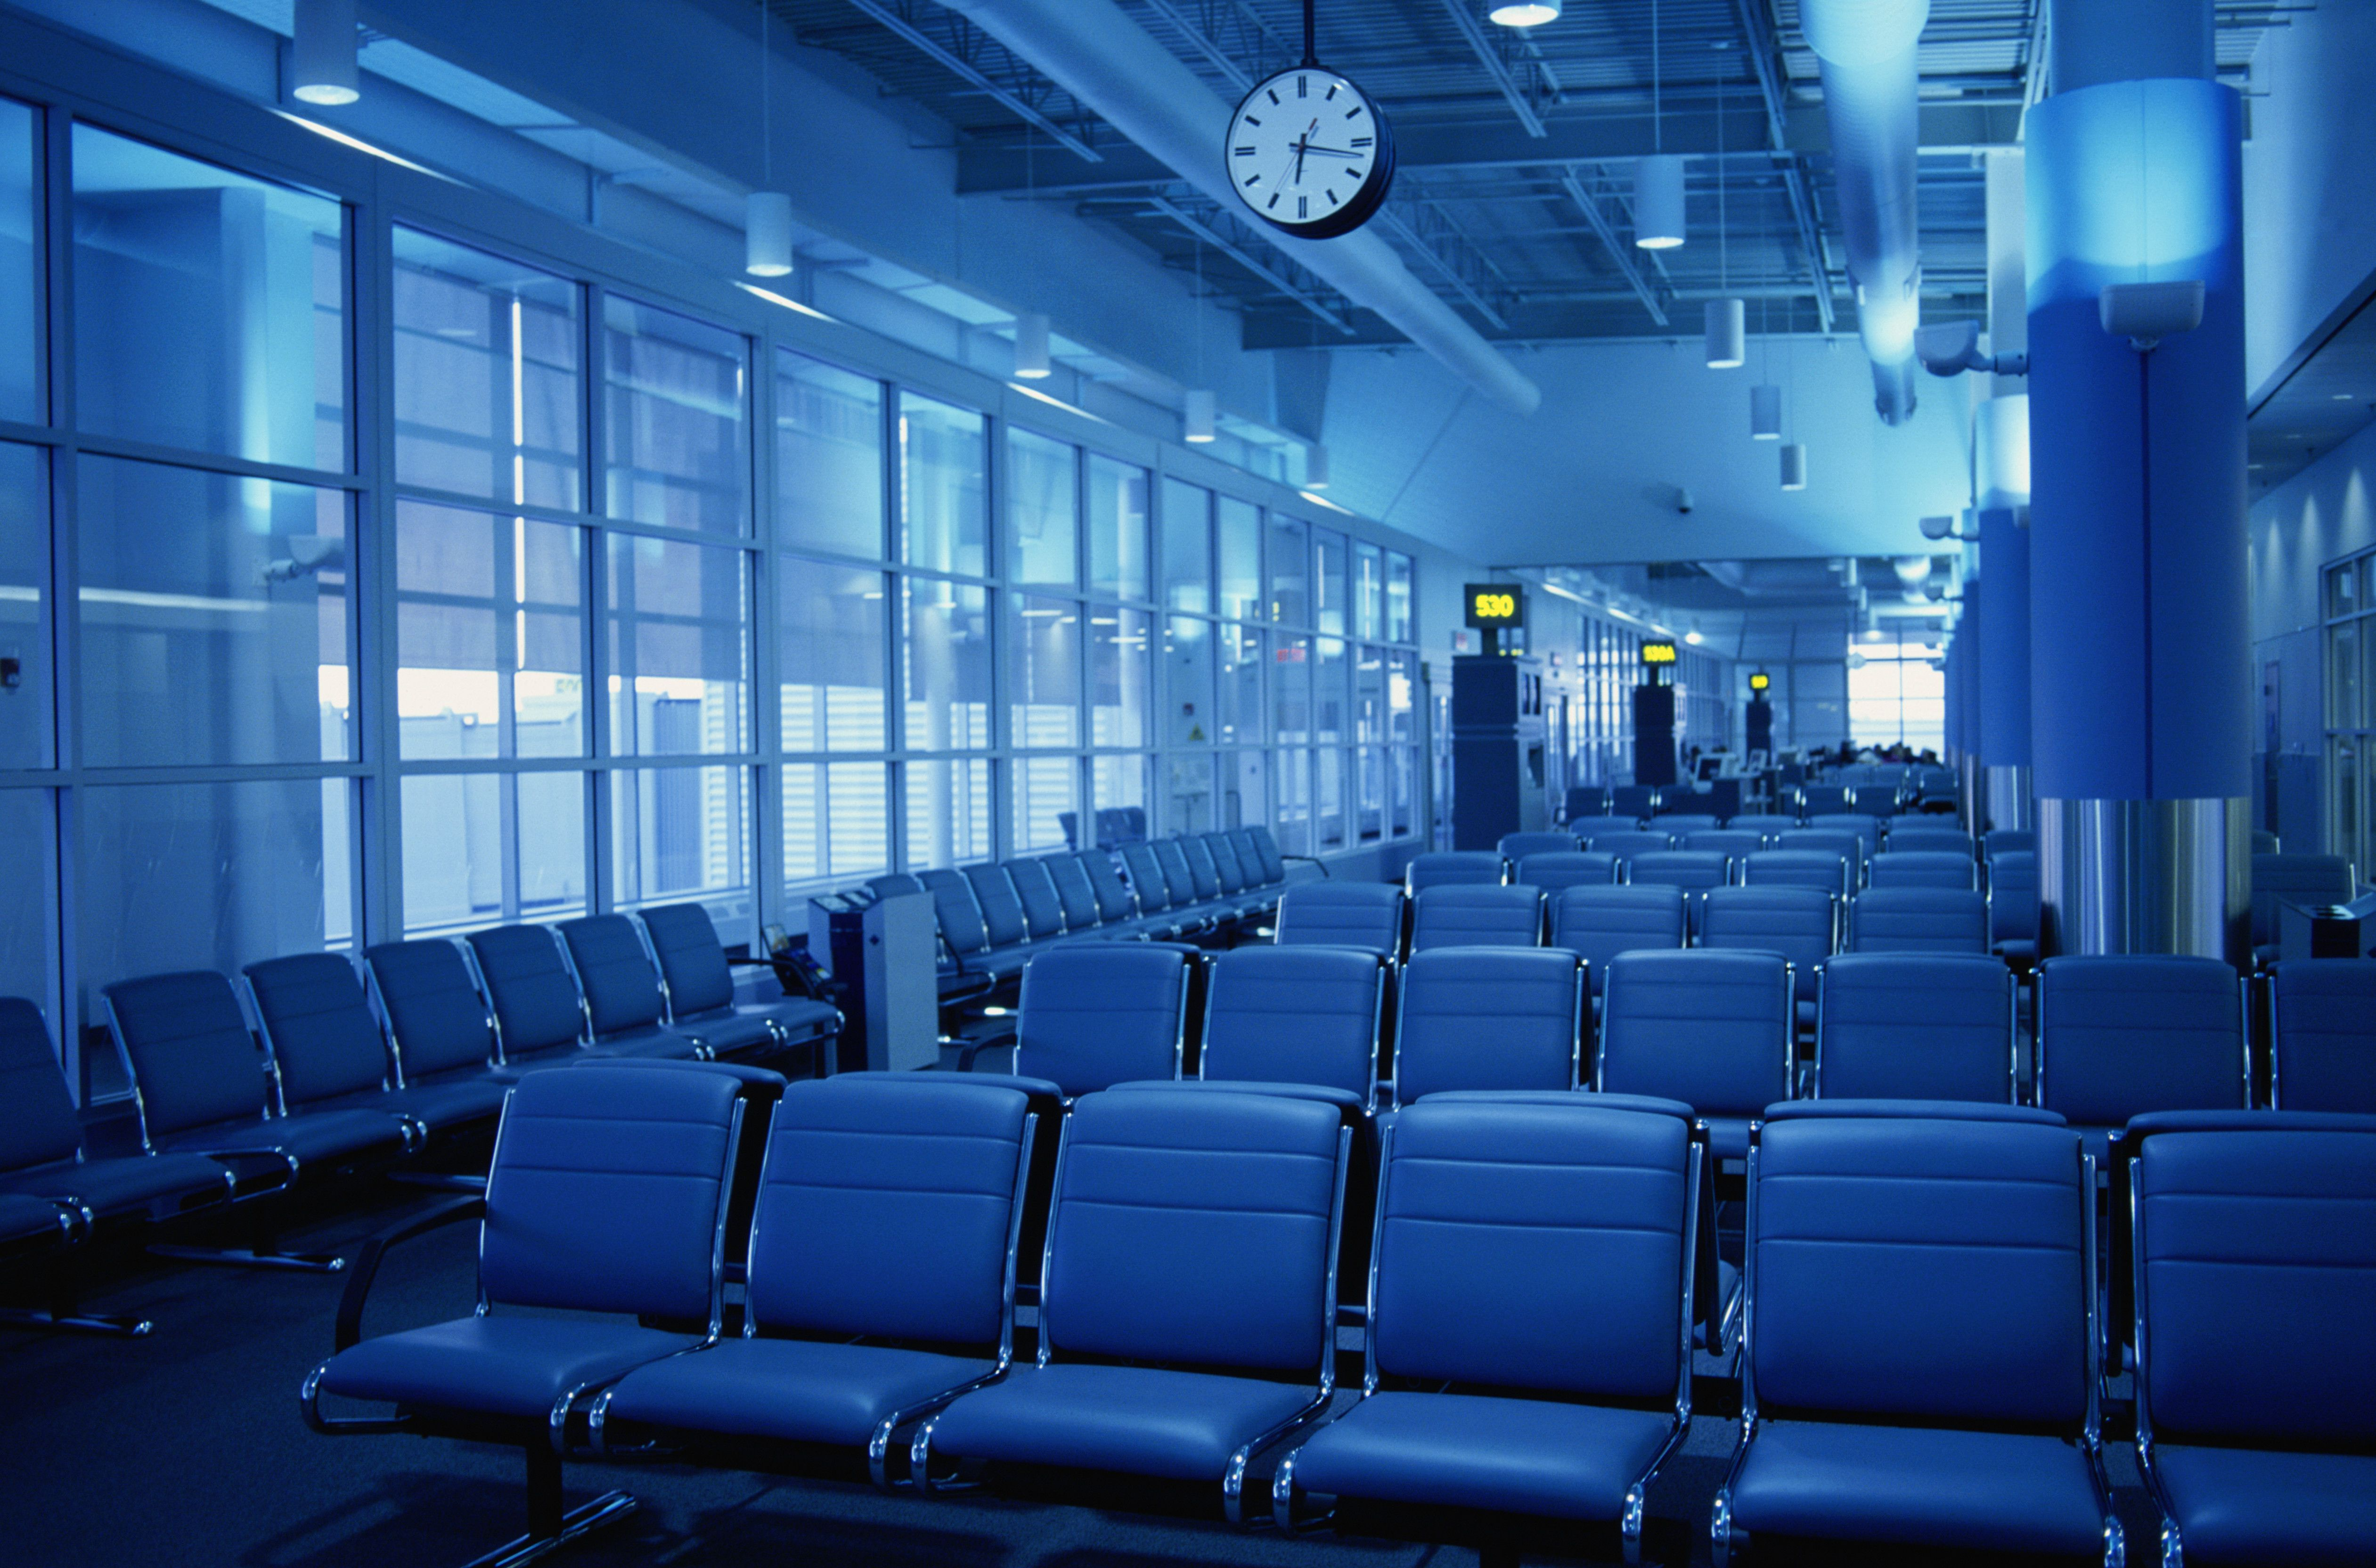 Toronto Pearson Airport chairs